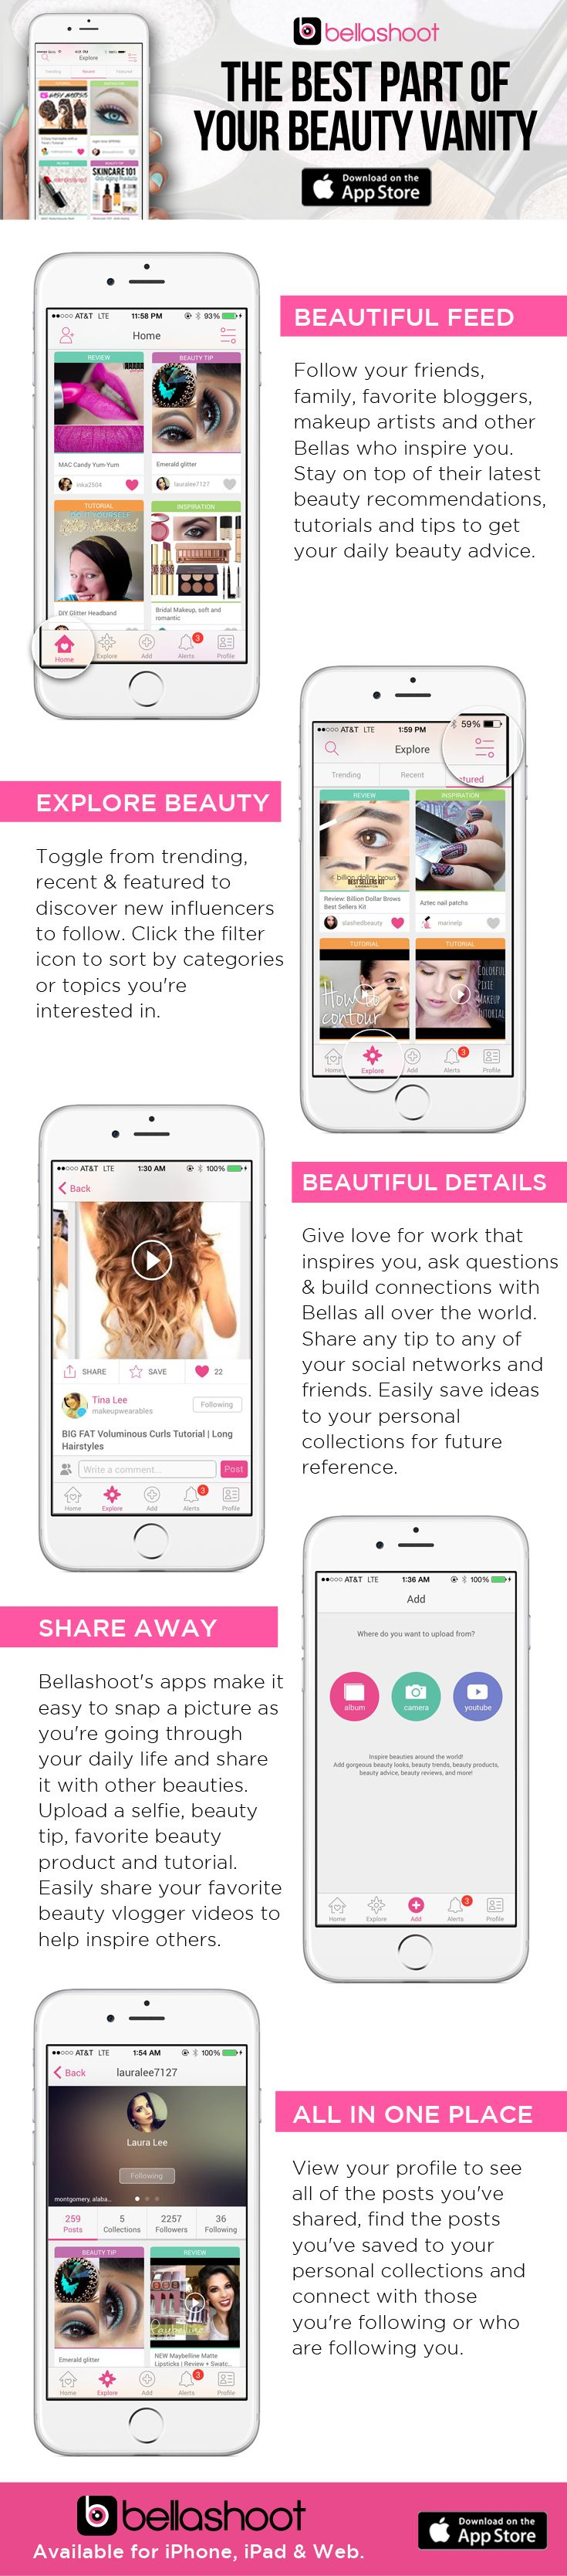 """Love beauty tips, tutorials, reviews and more? Download Bellashoot's beauty app for free (link in profile) or lookup """"bellashoot"""" on the App store."""